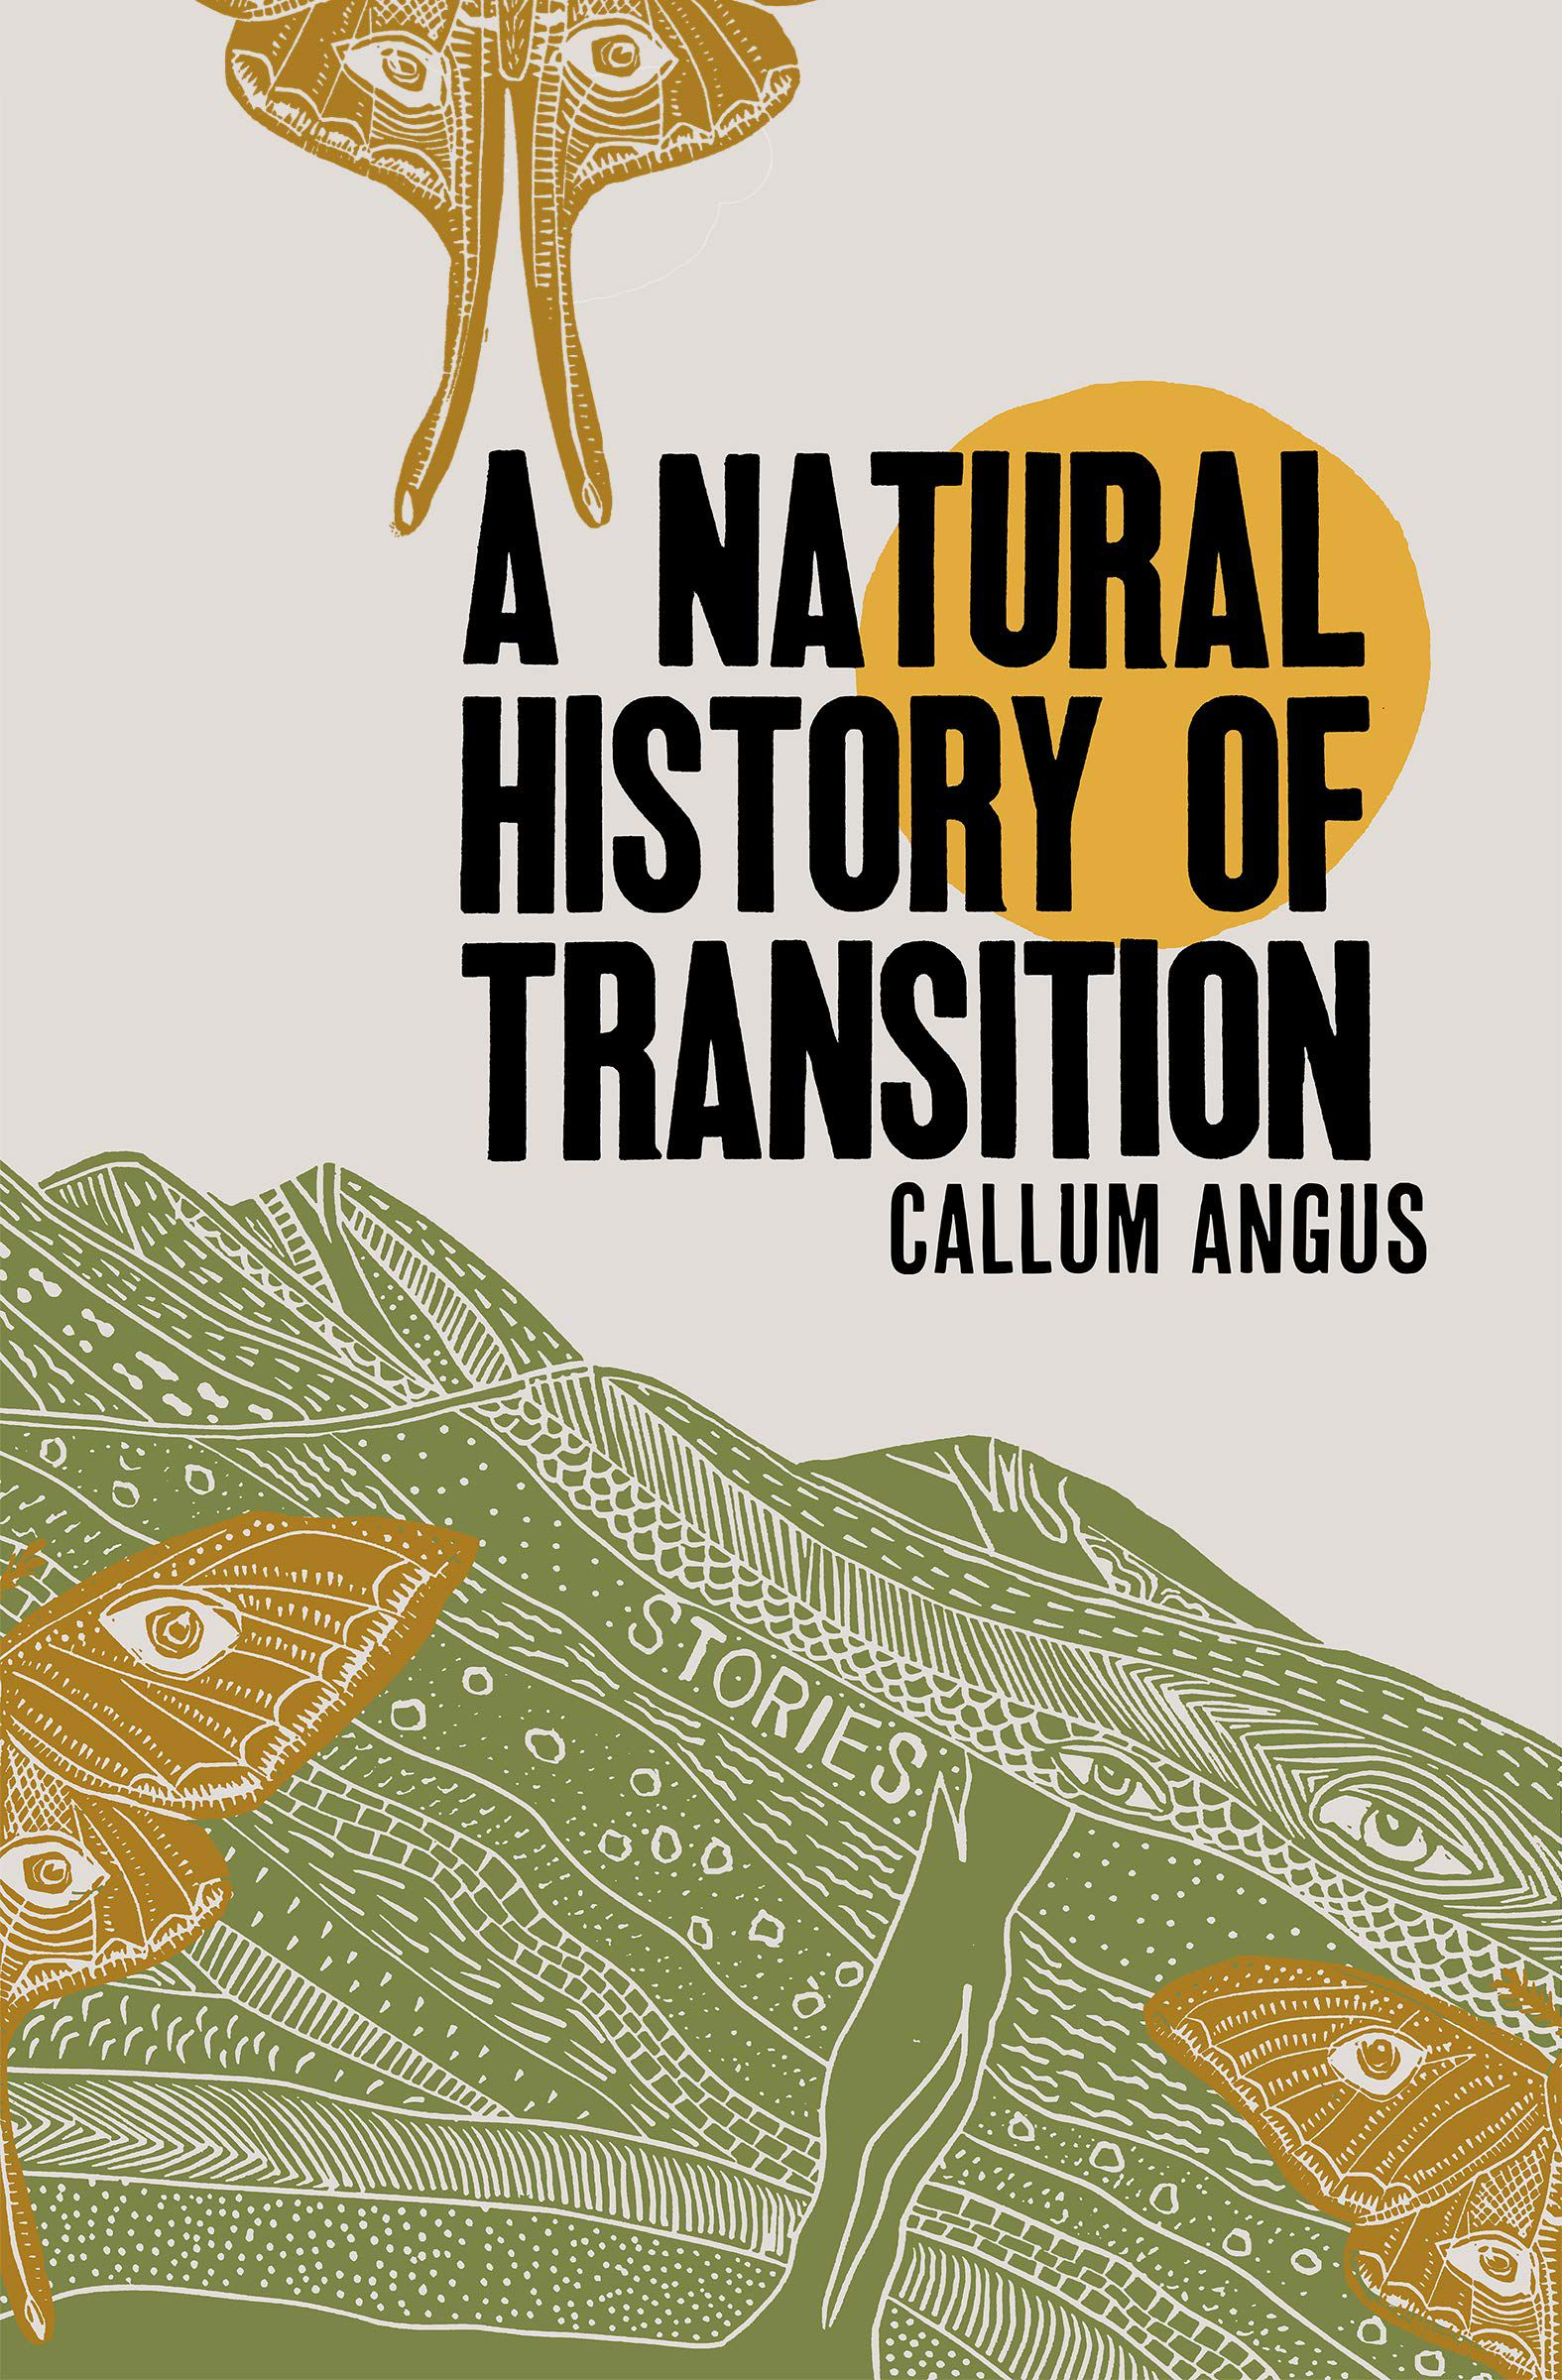 A Natural History of Transition by Callum Angus